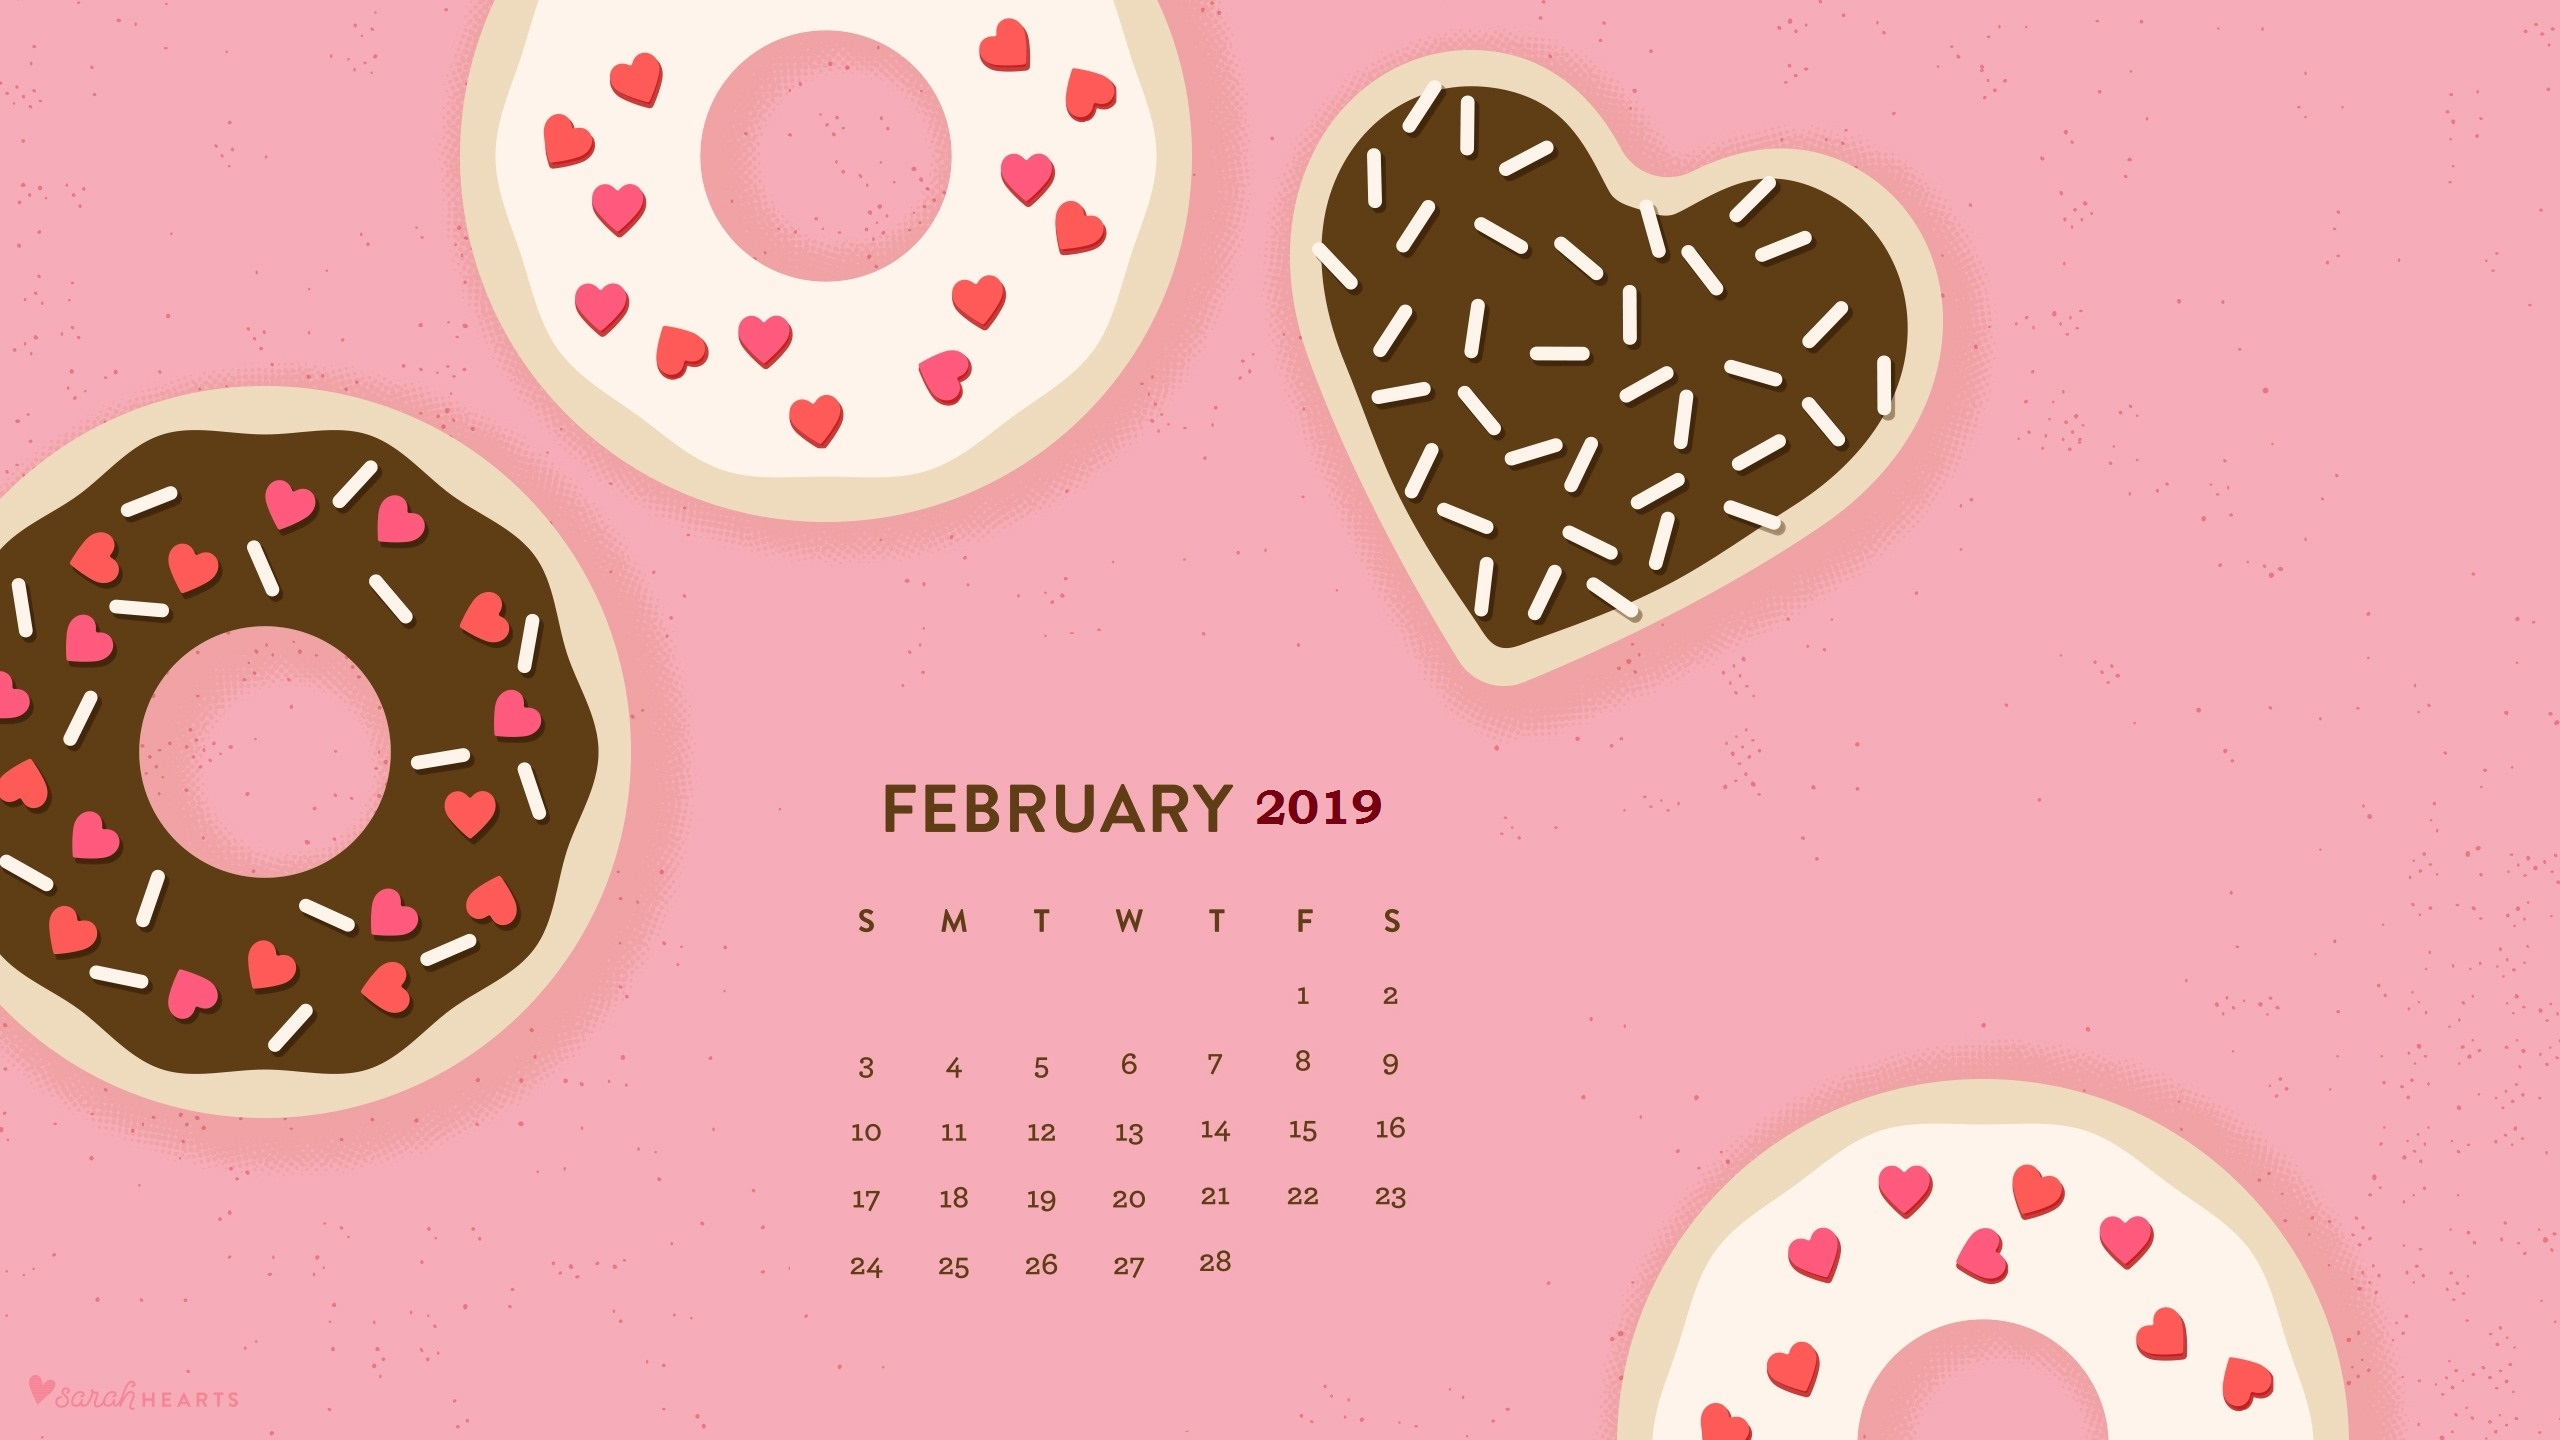 February 2019 Calendar Wallpapers Calendar 2019 2560x1440